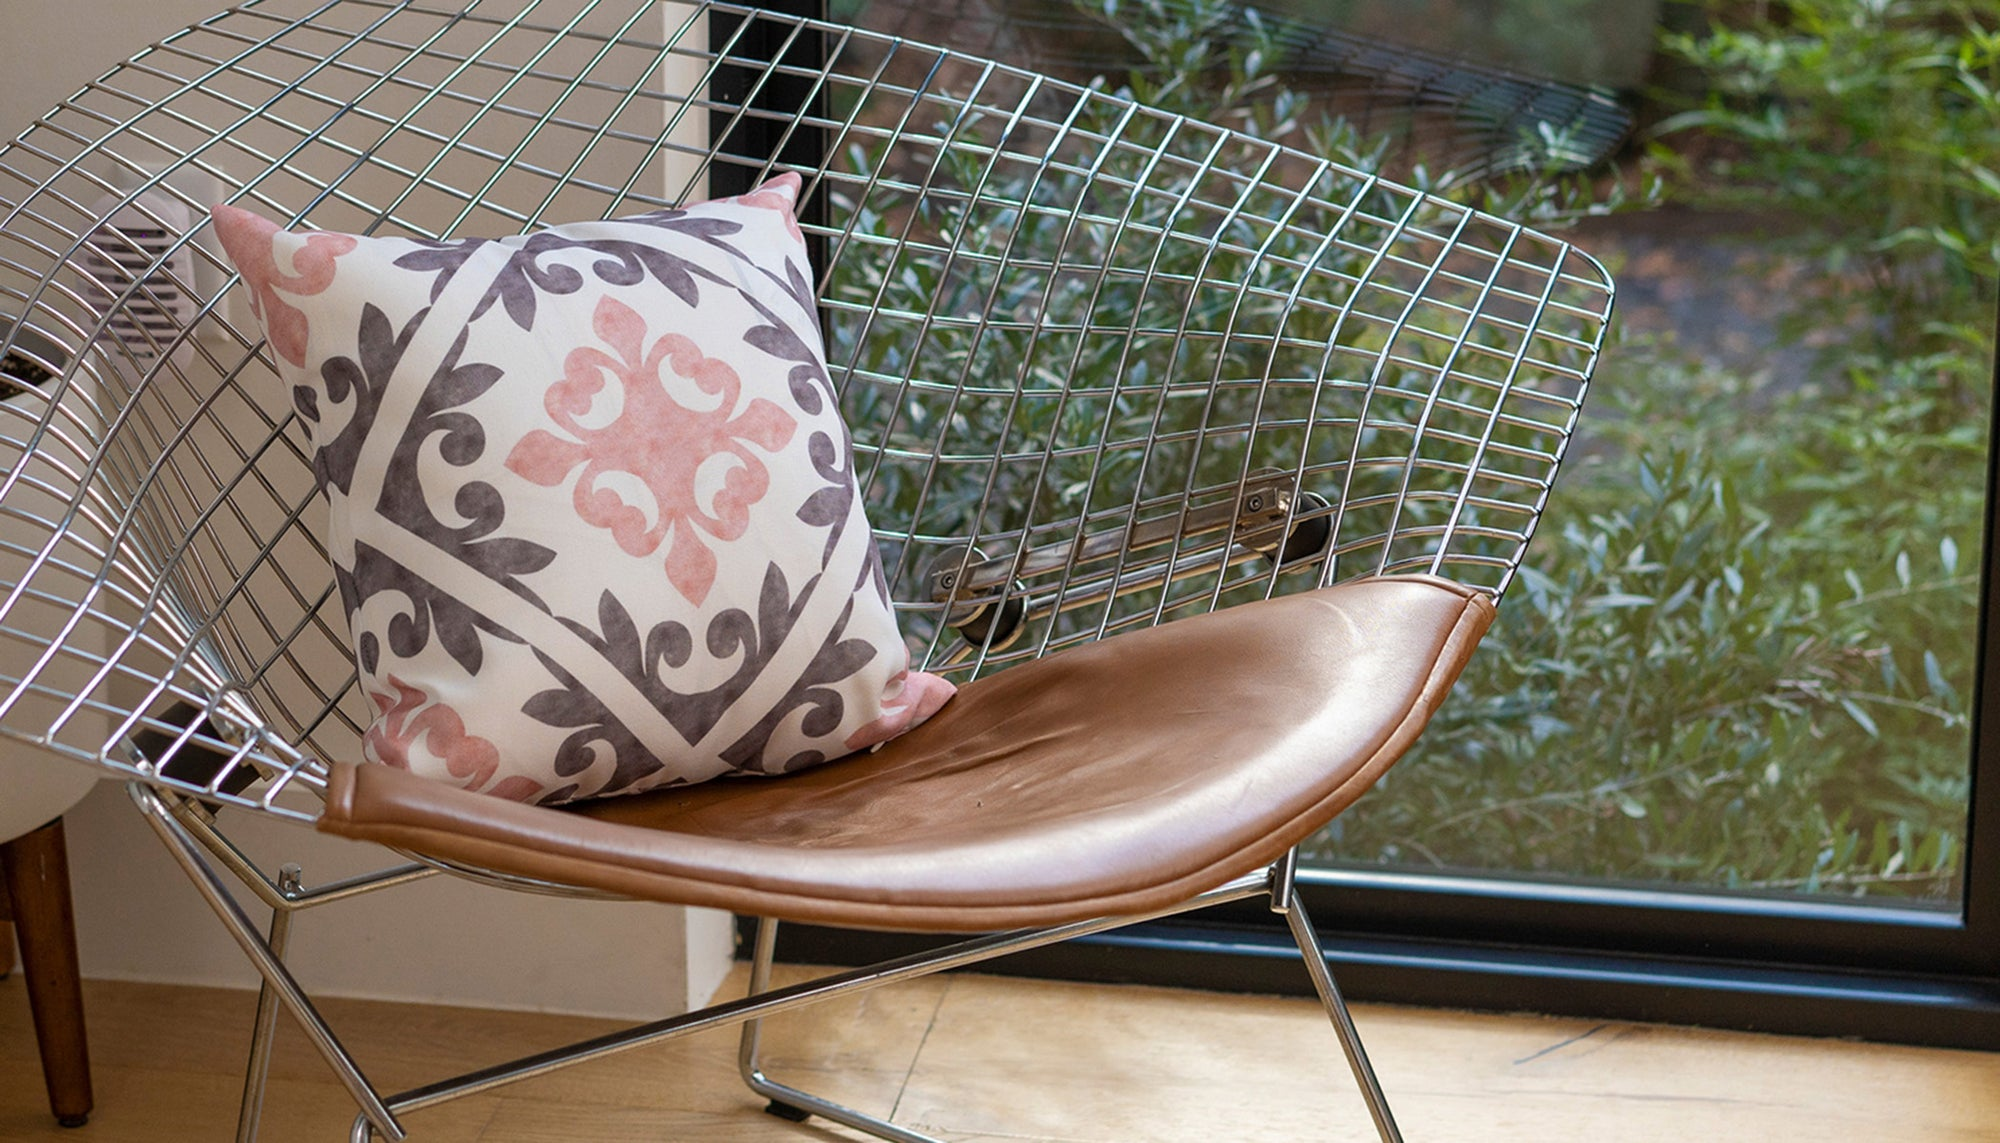 Midcentury Modern Chair with Pillow